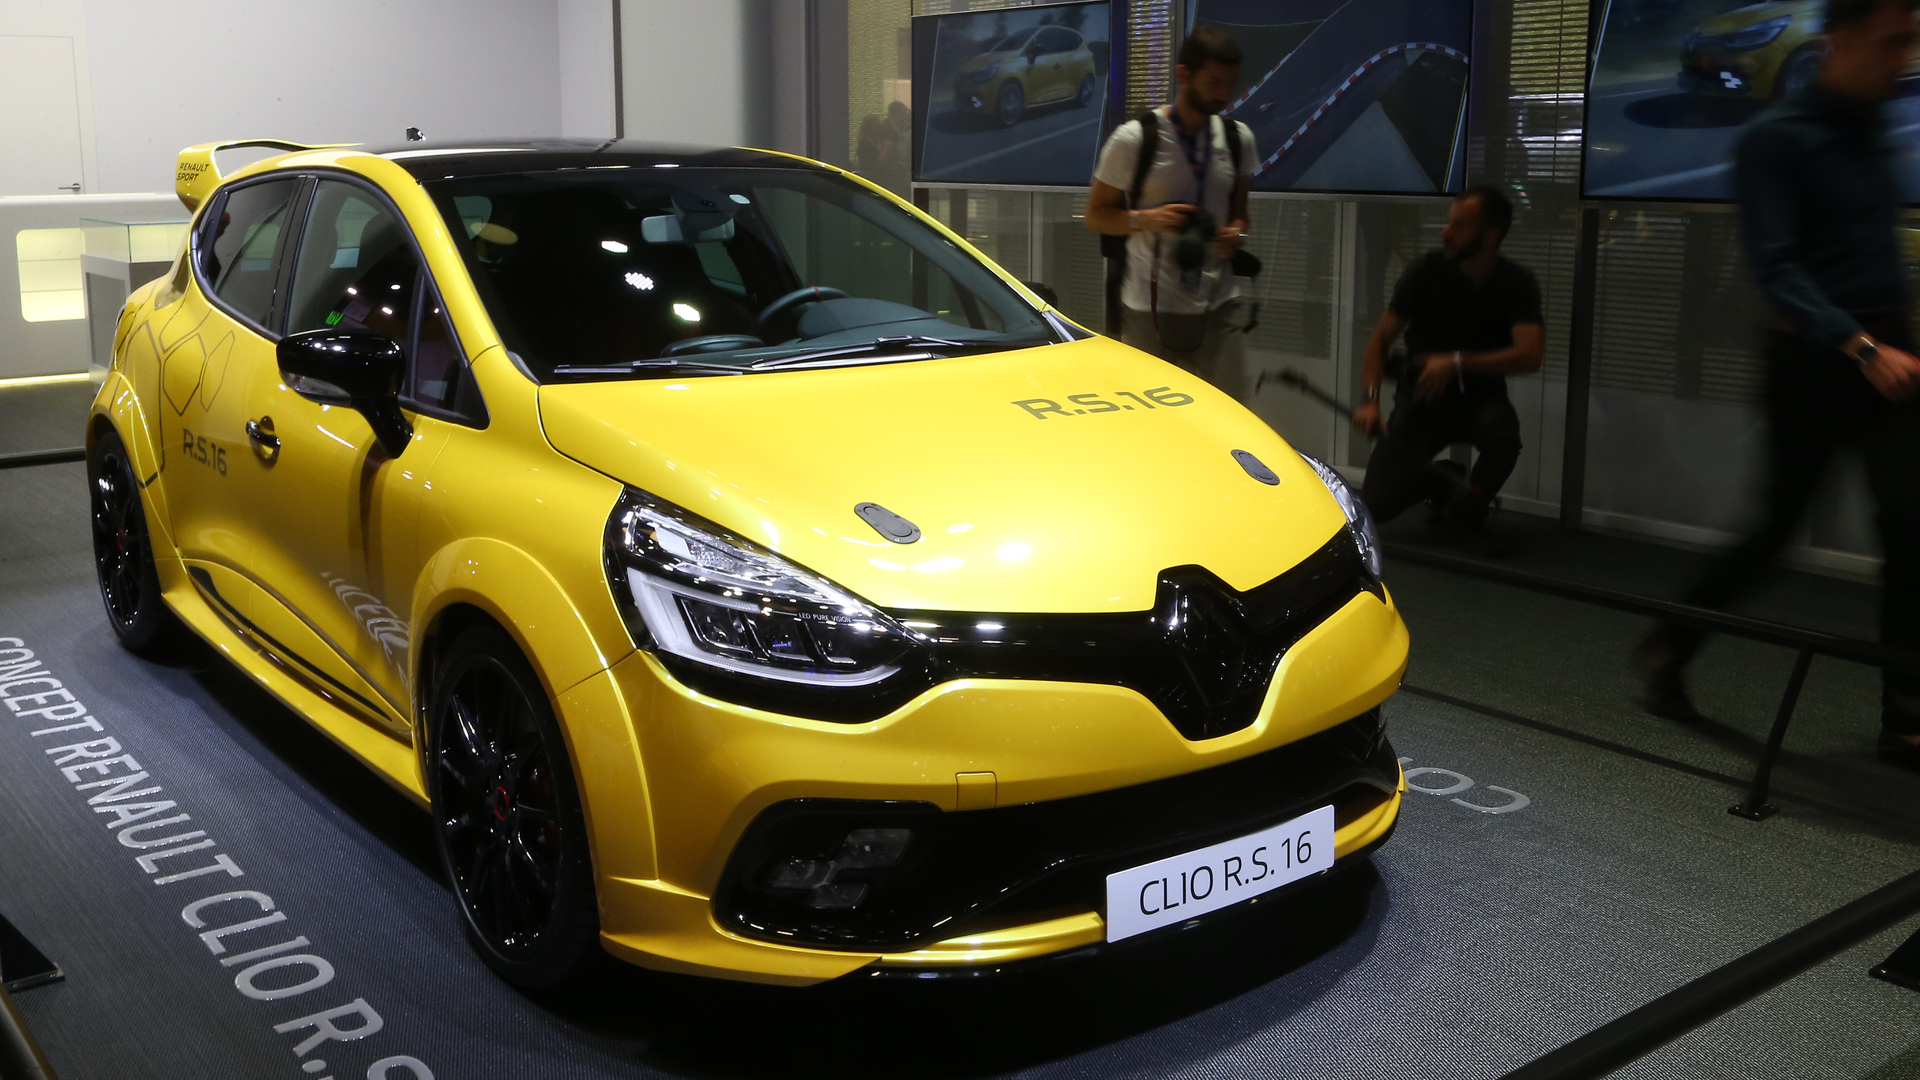 Renault Clio R.S. 16 production possibility looks strong